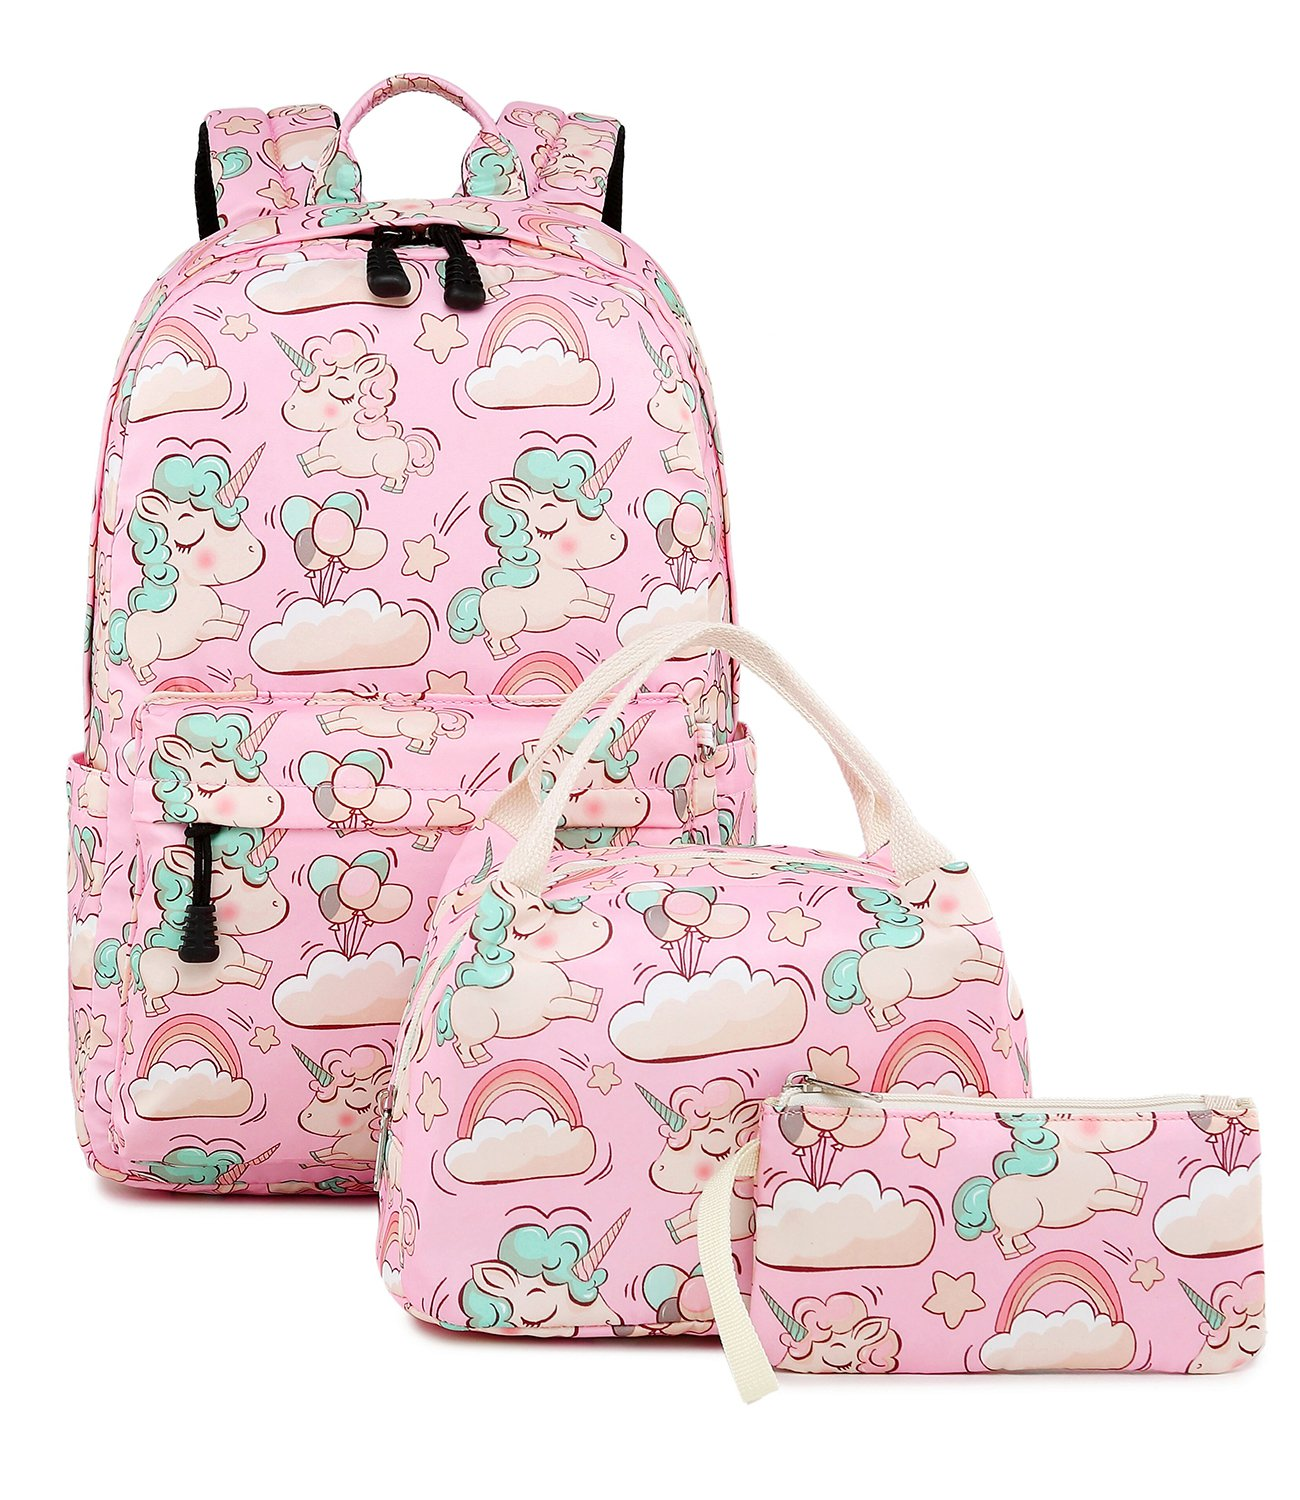 Abshoo Cute Lightweight Kids School Bookbags Unicorn Girls Backpacks With Lunch Bag (Unicorn Pink Set G3) by abshoo